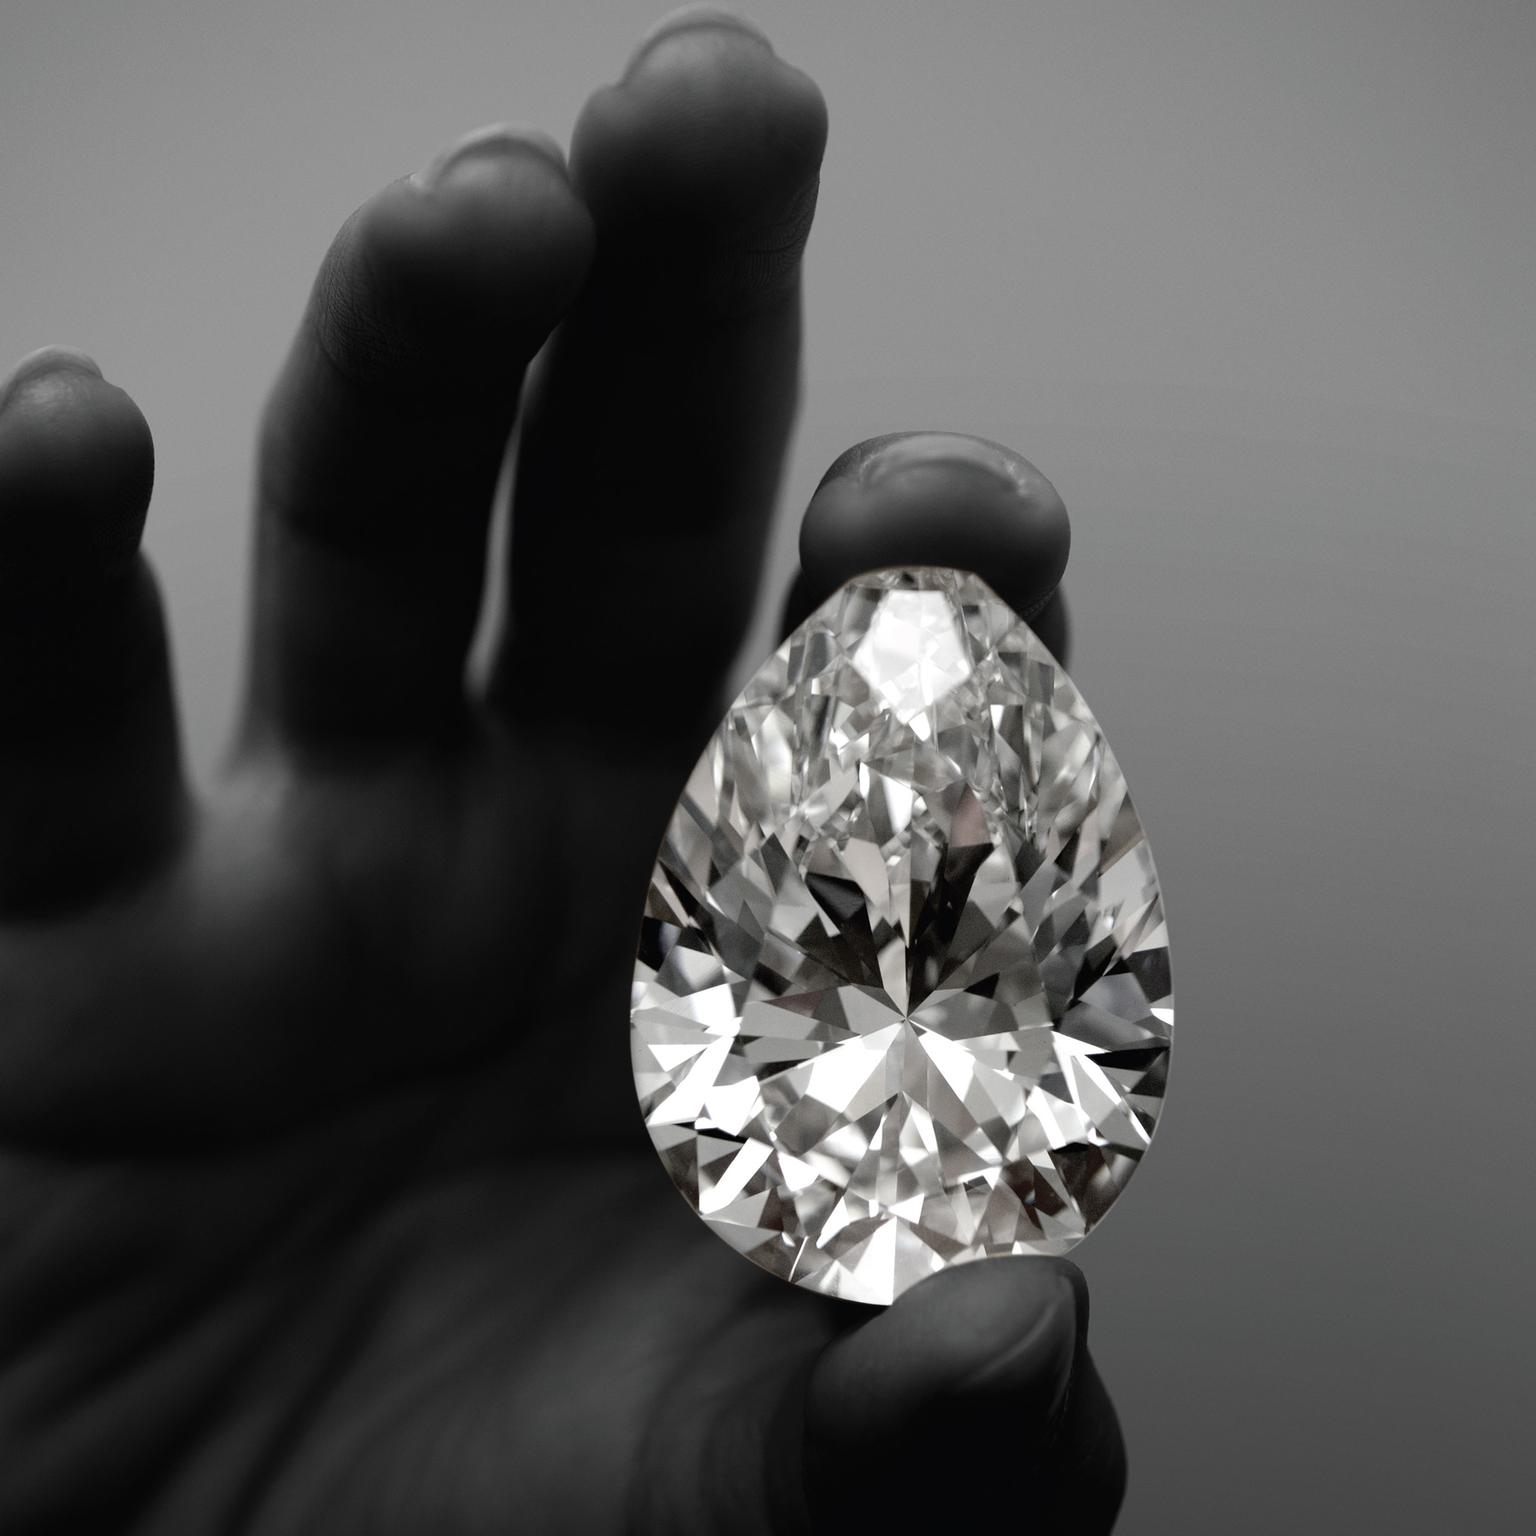 The Harrods Diamond